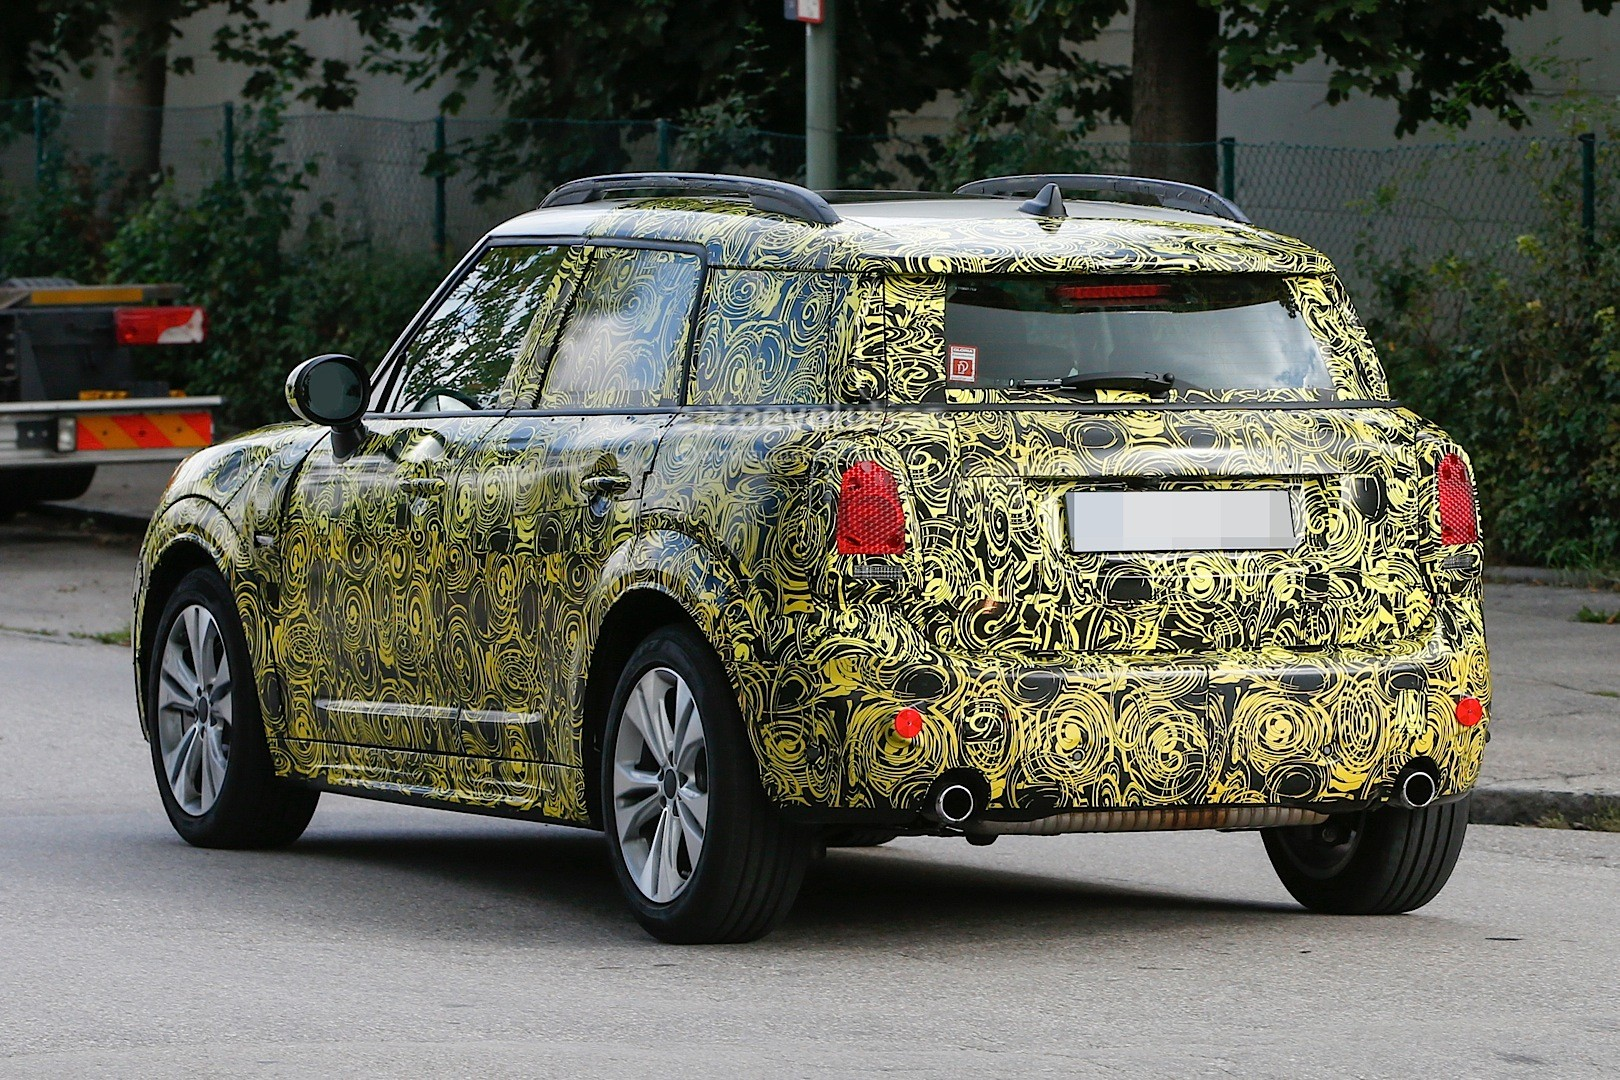 spyshots-2017-mini-countryman-disguise-thins-out-shows-unconventional-design_22